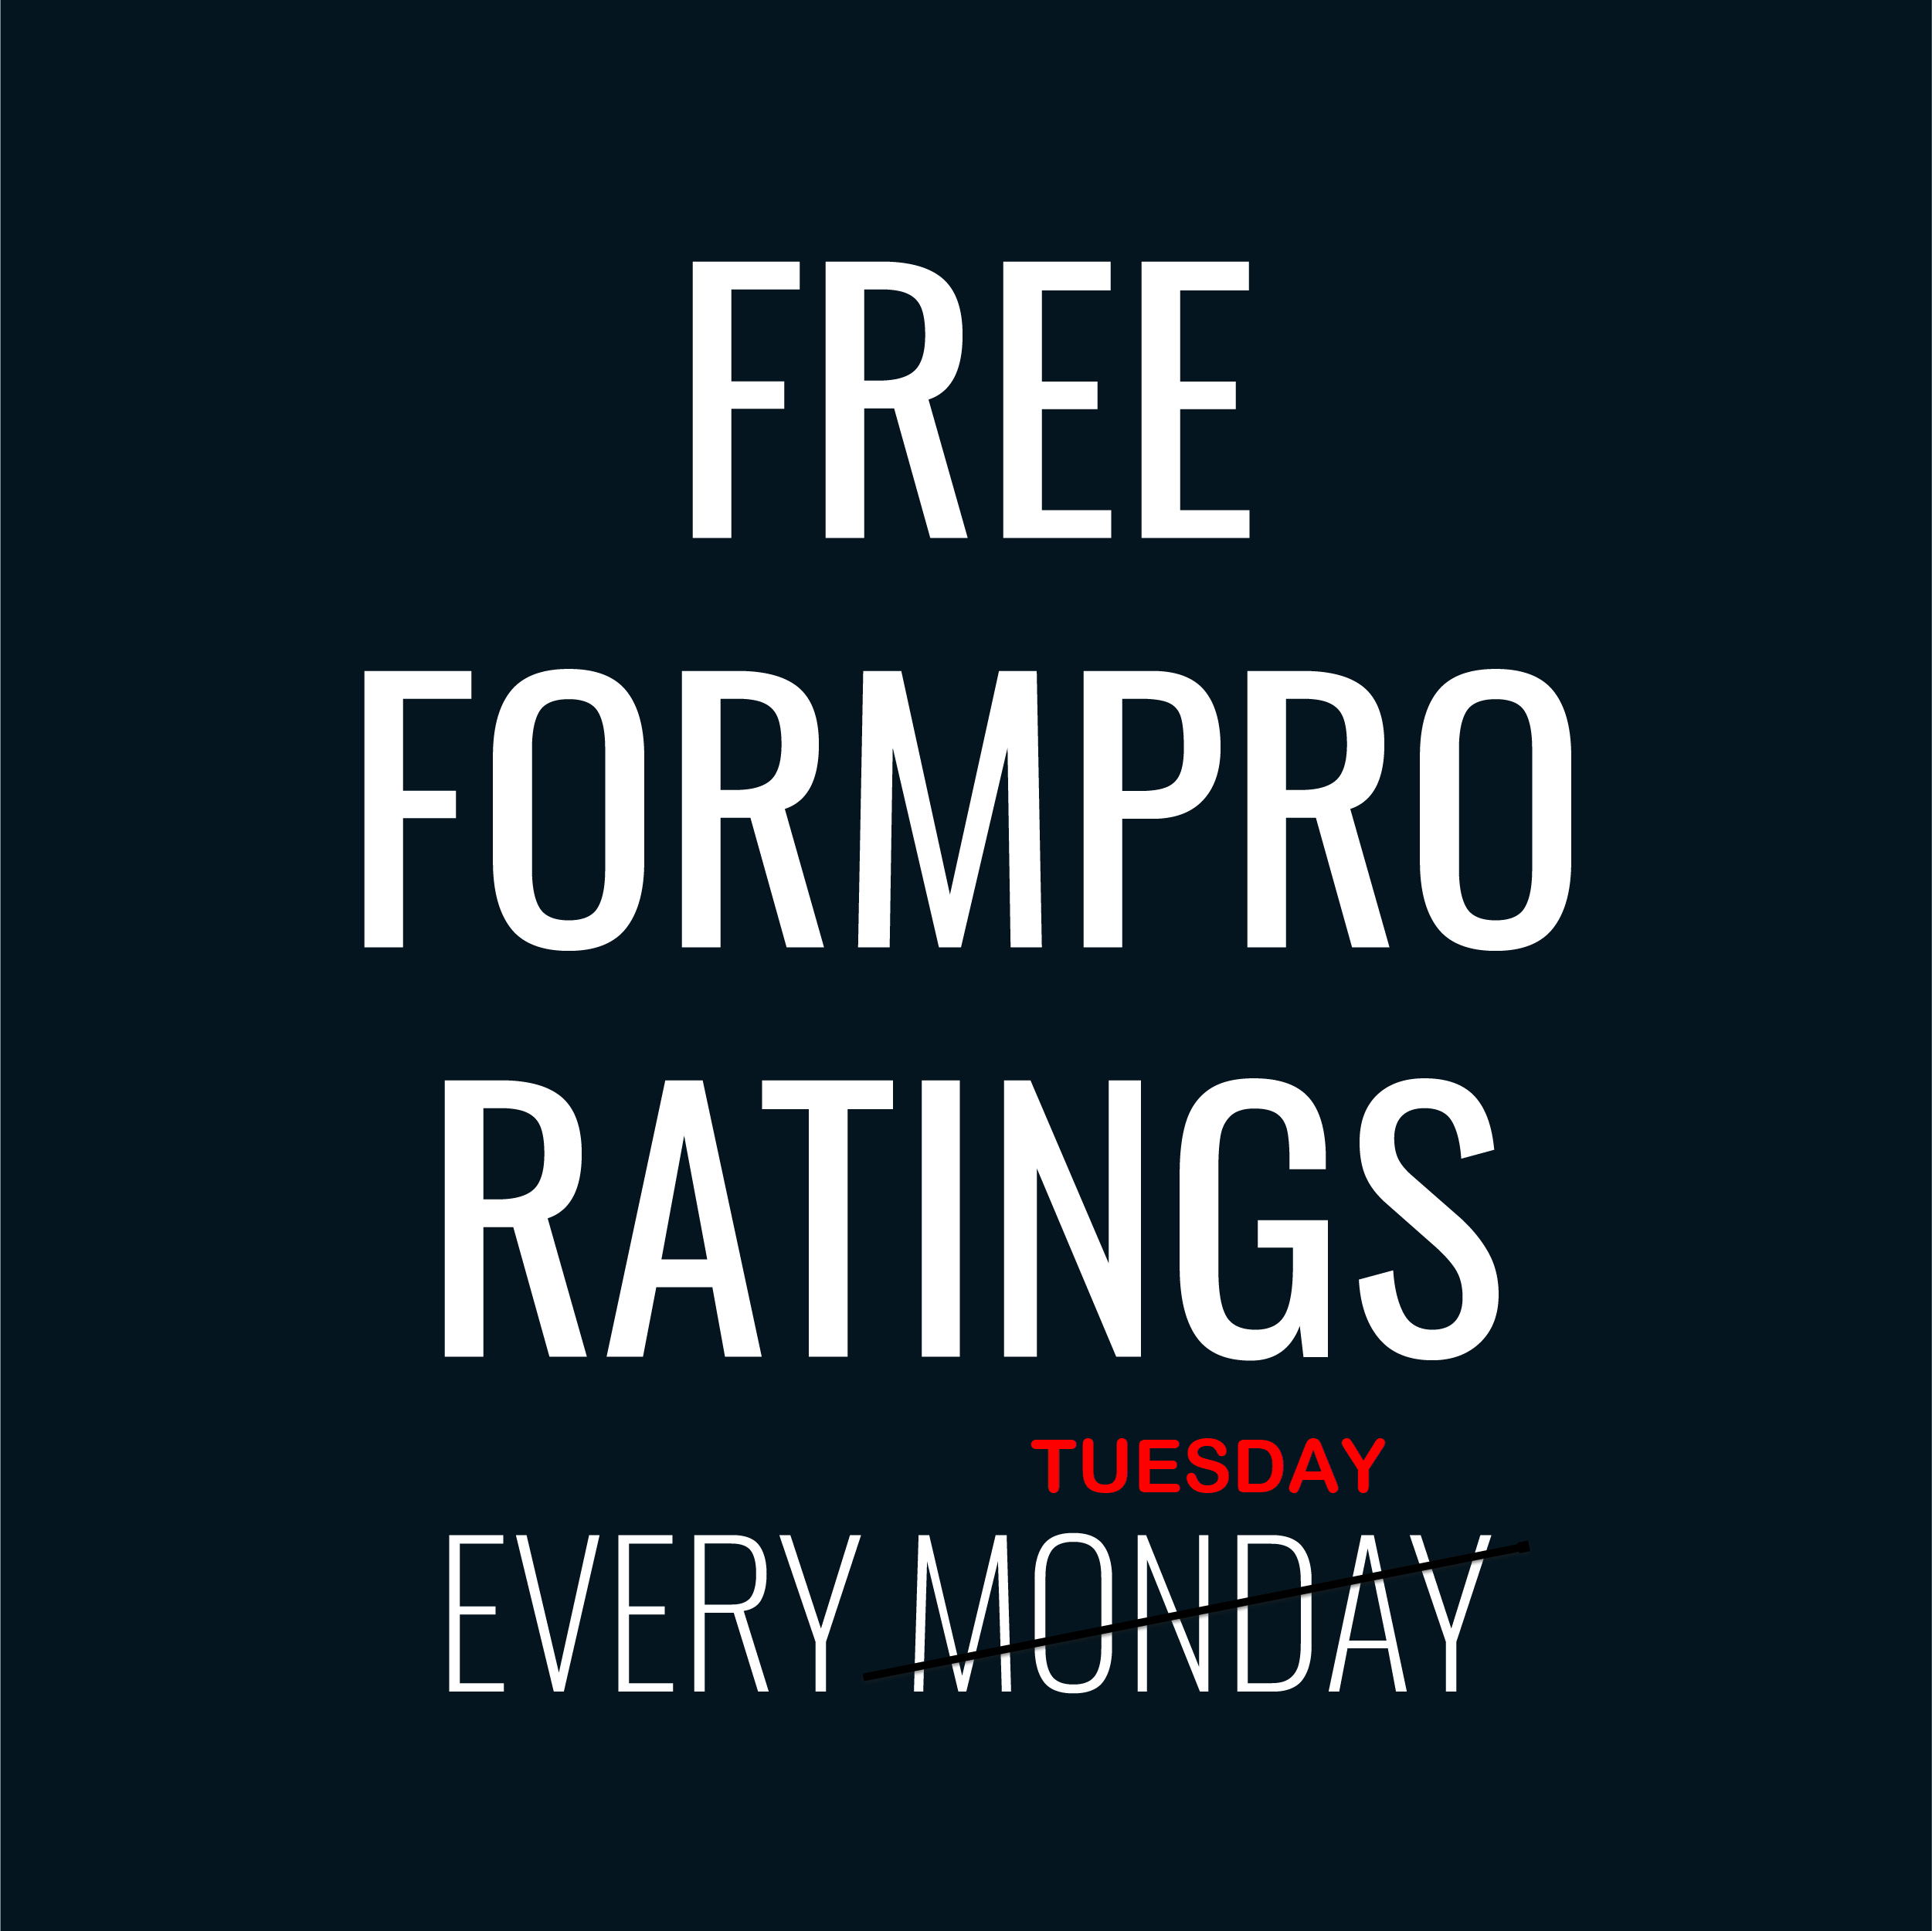 Free Greyhound Ratings Tuesday 26 April 2021